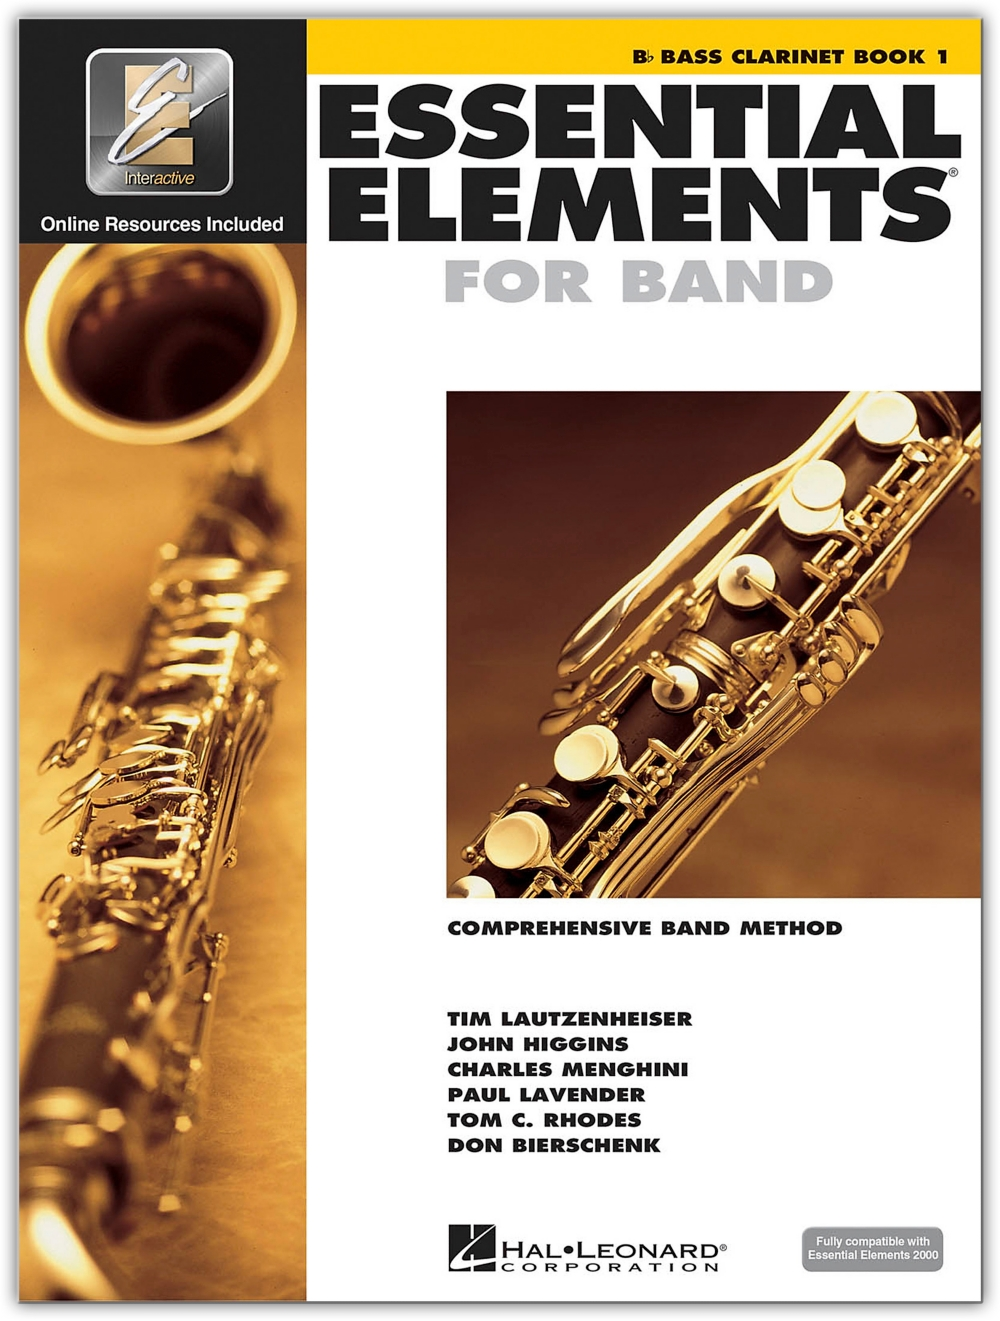 Hal Leonard Essential Elements for Band Bass Clarinet 1 Book Online Audio by Hal Leonard